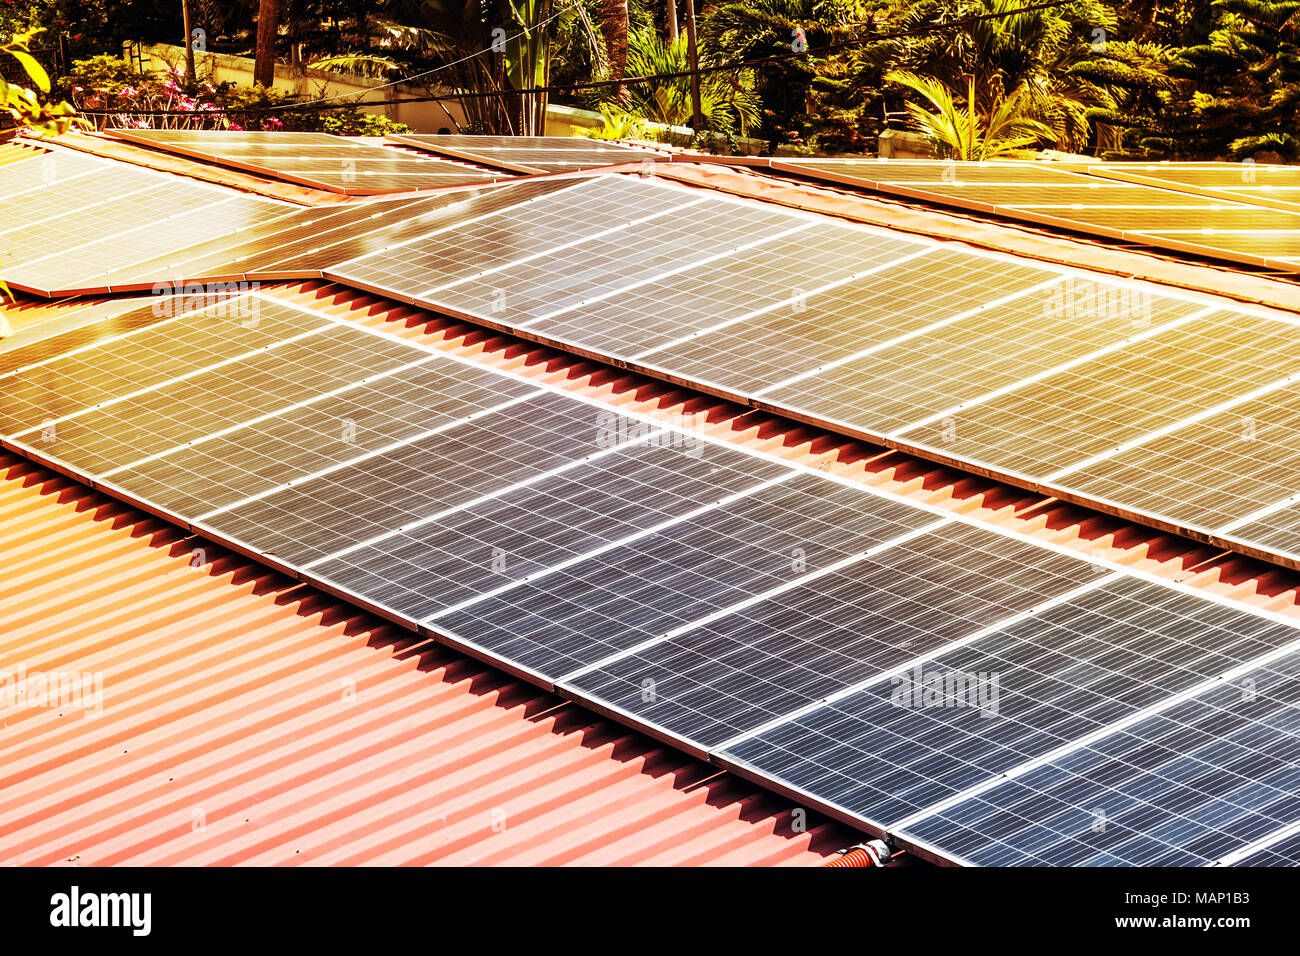 Roof with solar panels fragment under sunny blue sky. sun is shining on black solar panels. Alternative energy source. Electrification in the Andaman  - Stock Image